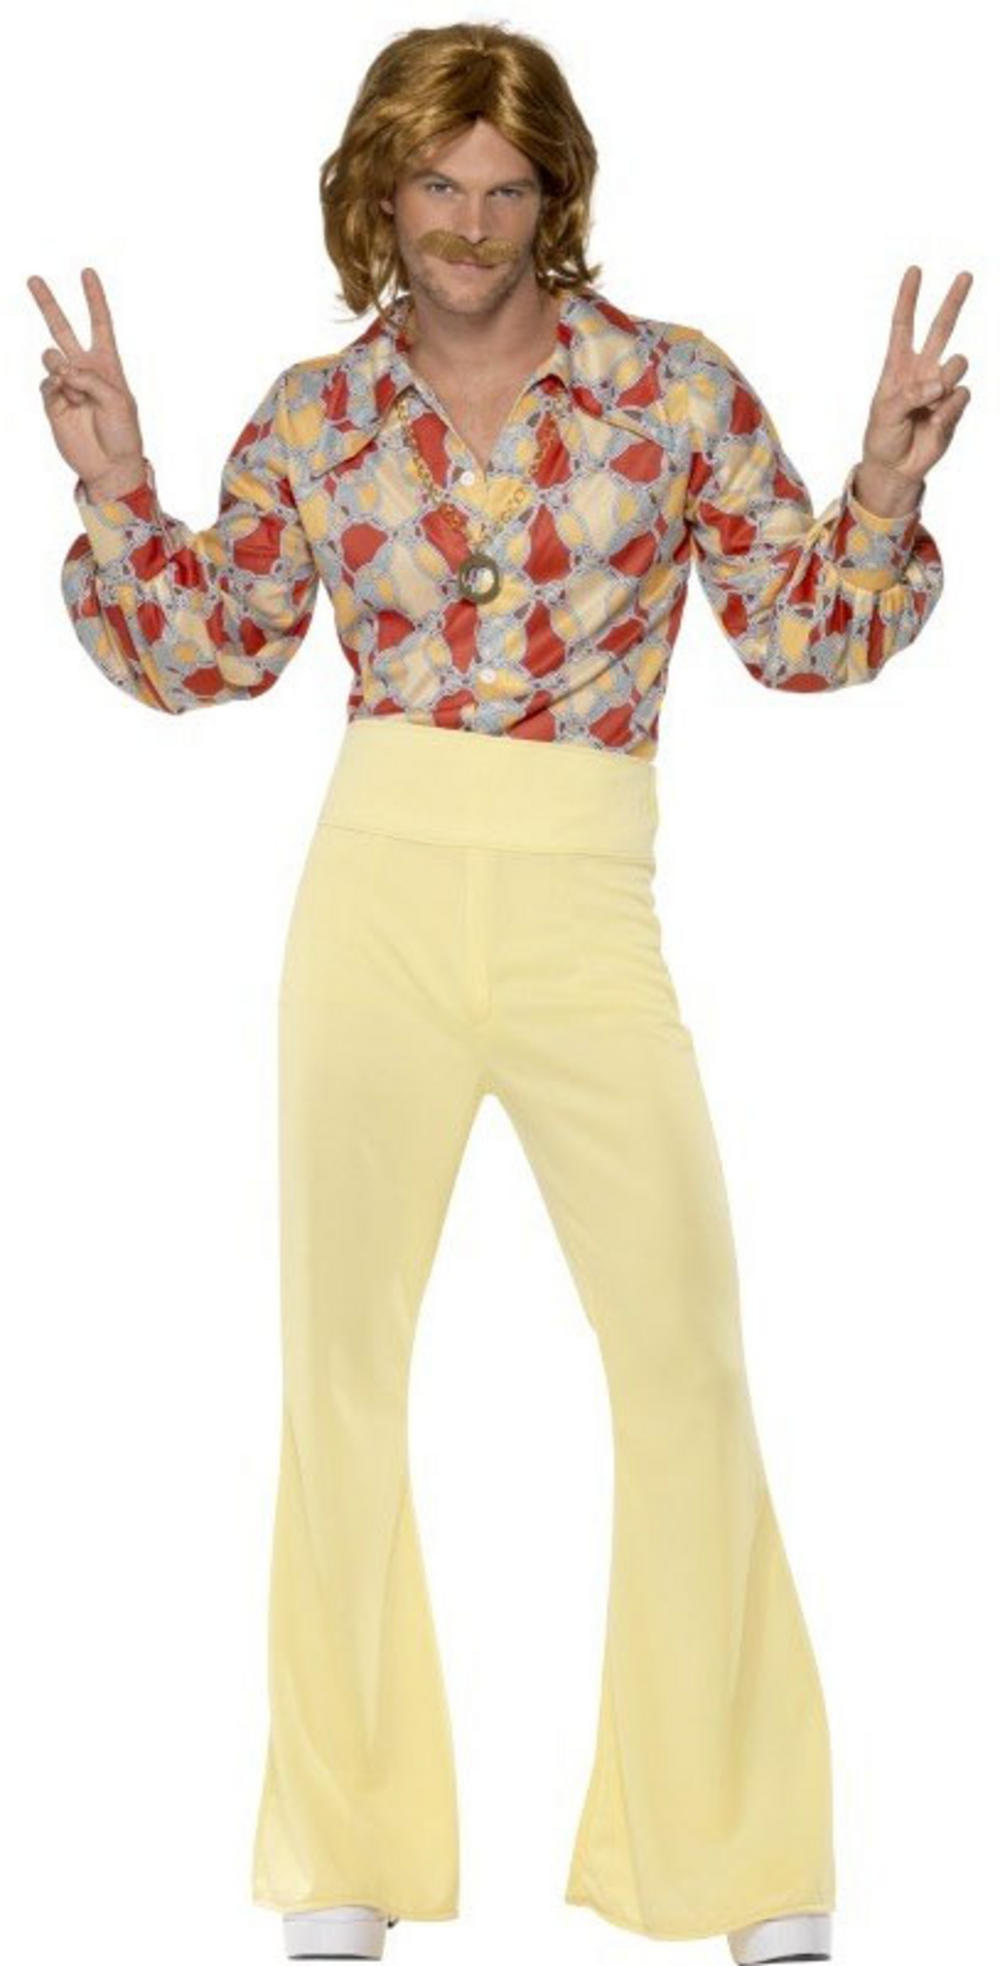 60s Groovy Guy Costume